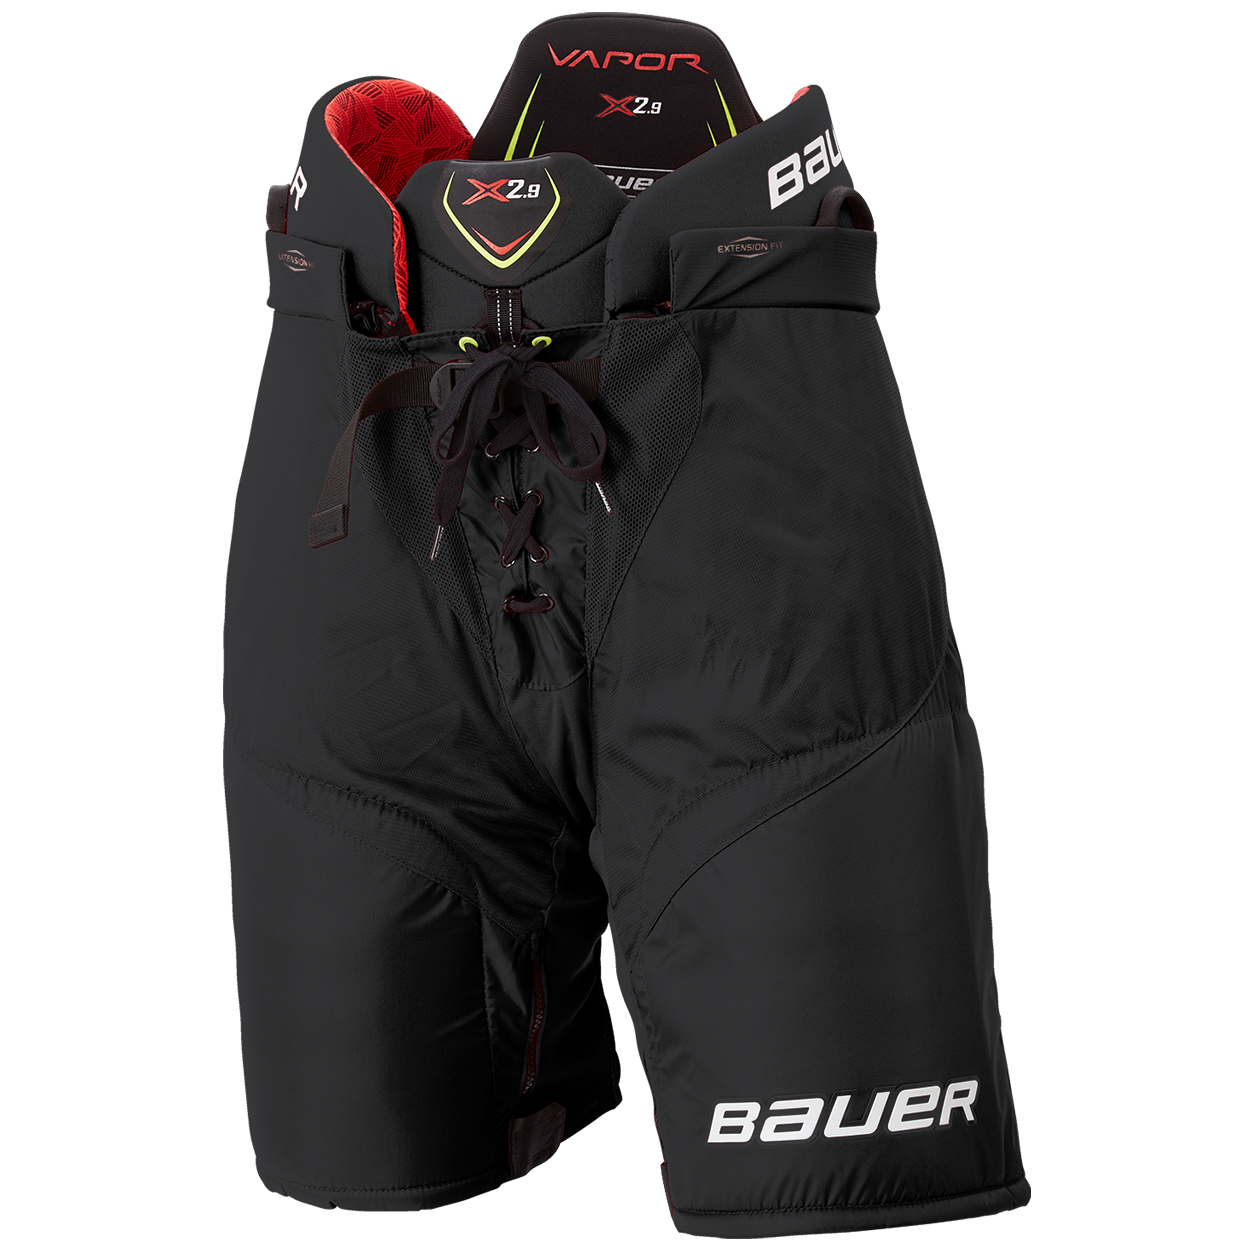 VAPOR X2.9 Pants Senior,Black,medium